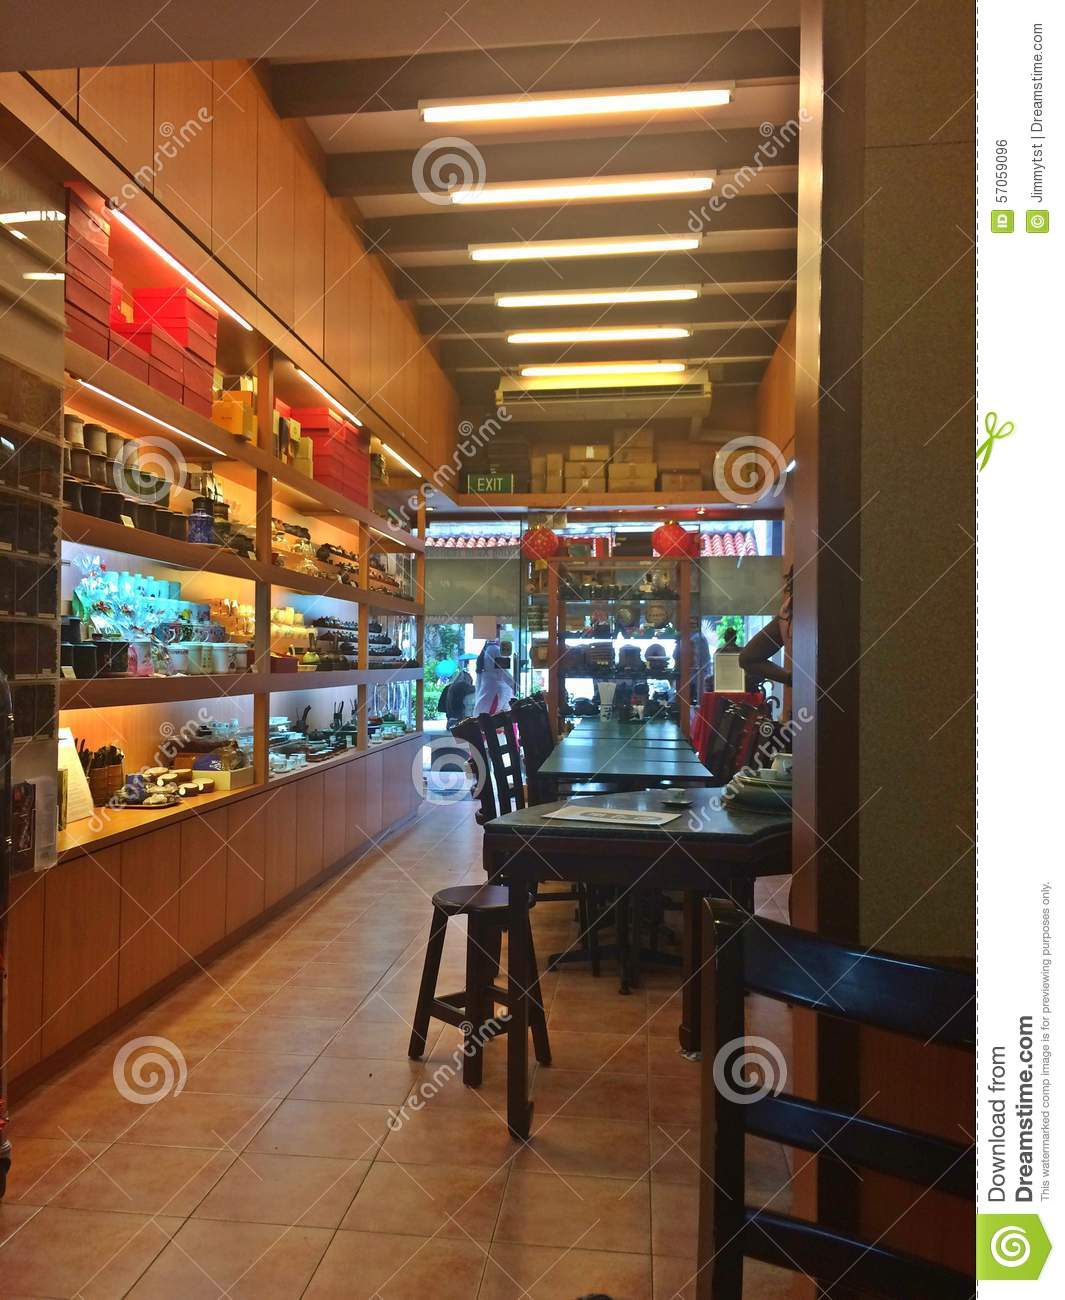 Chinese tea house editorial photo. Image of business - 57059096 on chinese art design, chinese bedroom design, chinese greenhouse design, tea logo design, food house design, chinese grill design, chinese garden design, ginger house design, chinese cave houses, chinese pagoda design, tea shop design, chinese house drawing, chinese contemporary design, chinese gazebo design, cooking house design, chinese style interior design, chinese wrought iron design, chinese asian design, chinese home design, chinese moon gate design,